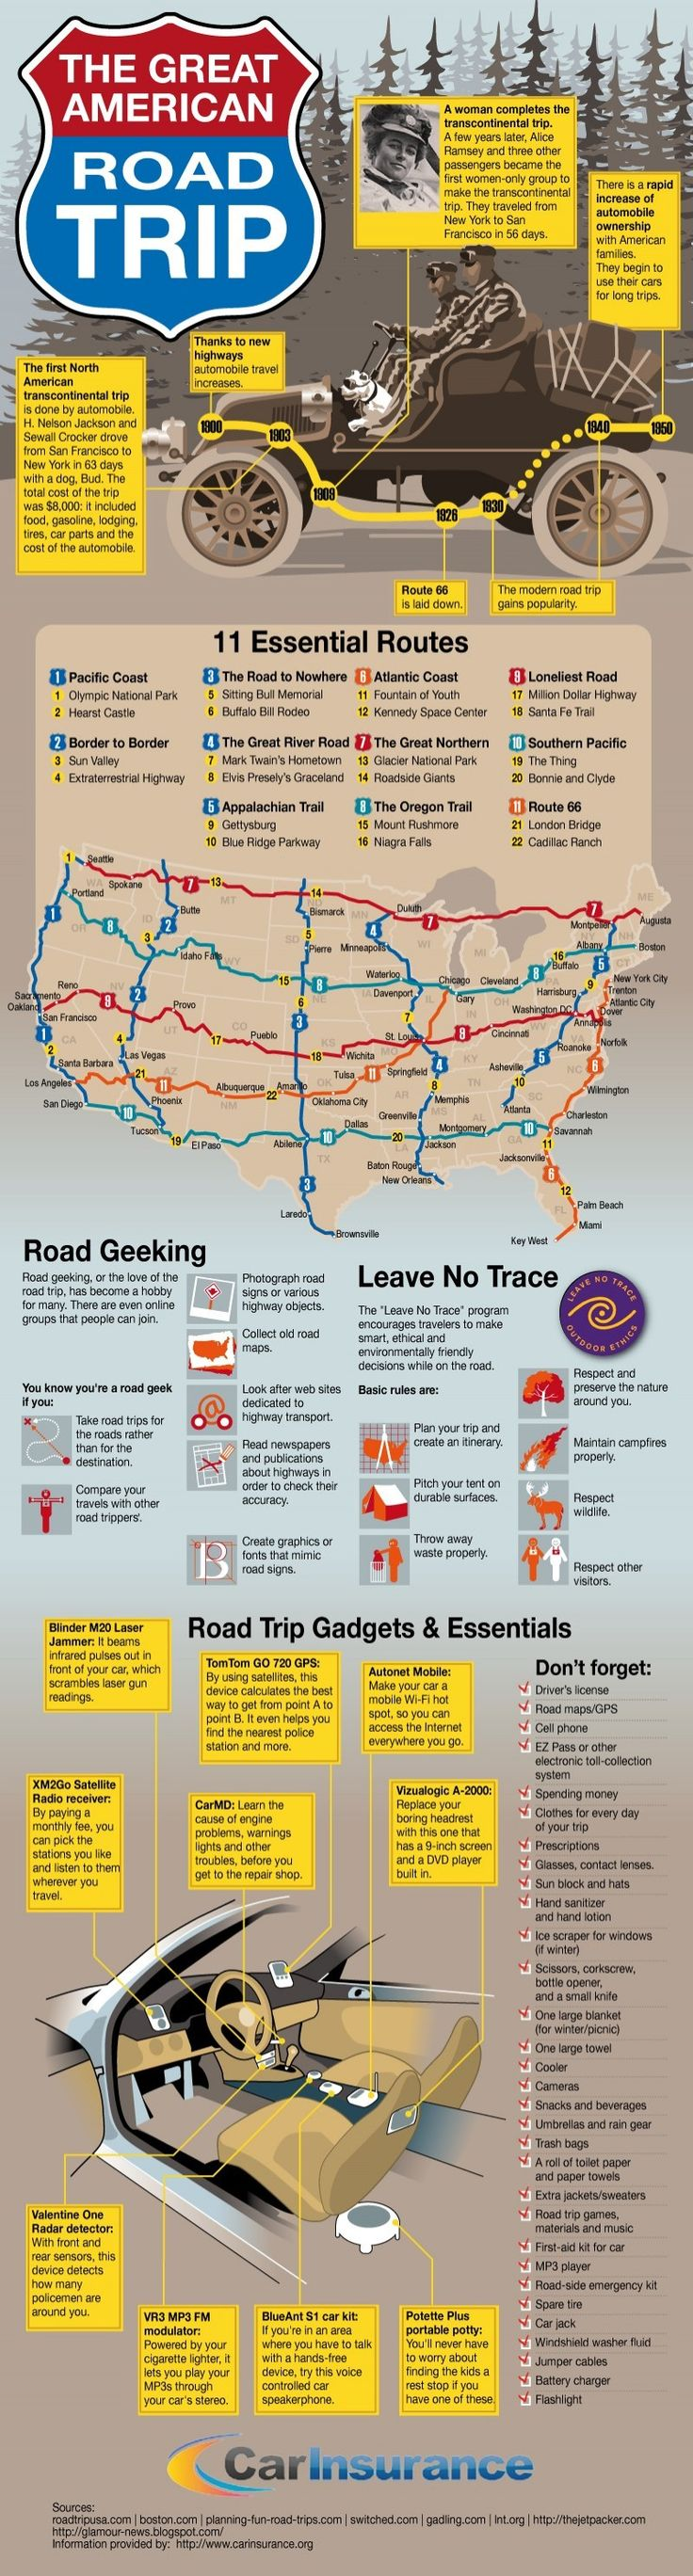 17 Best Images About Coolest Maps Of Usa On Pinterest